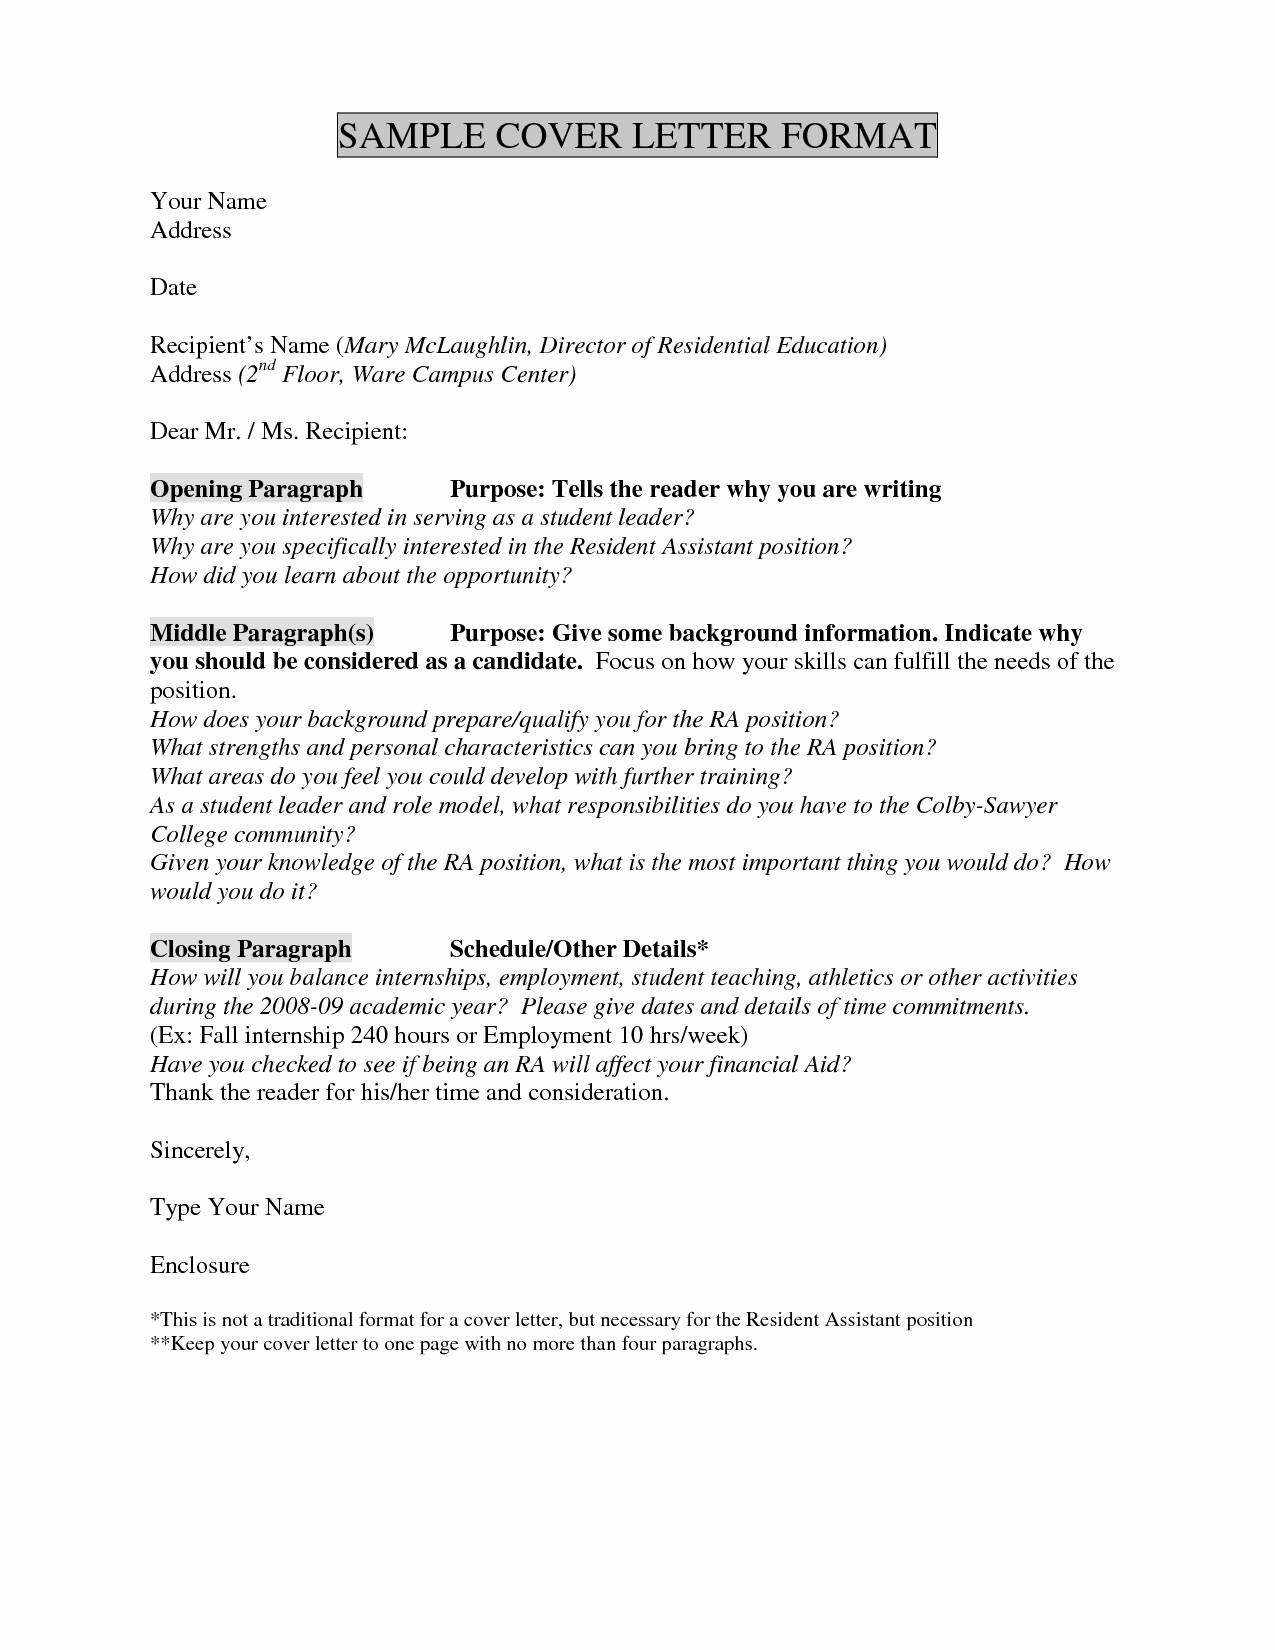 Intern Cover Letter Template - Internship Cover Letter Template Best Unique if I Apply to More